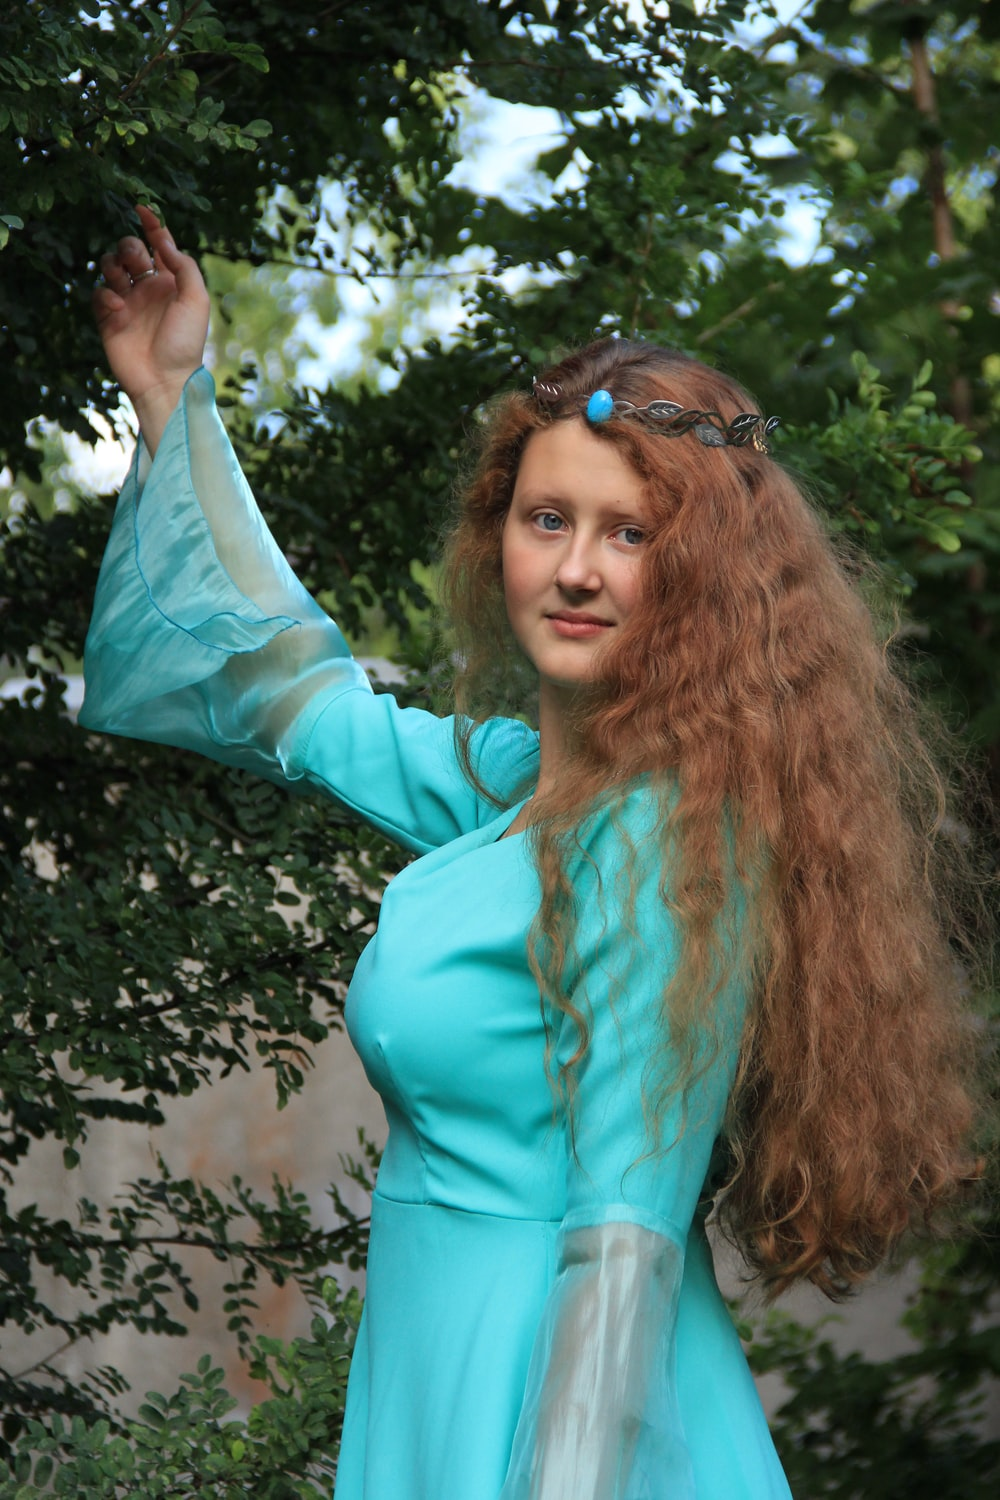 woman in teal long sleeve shirt holding her hair